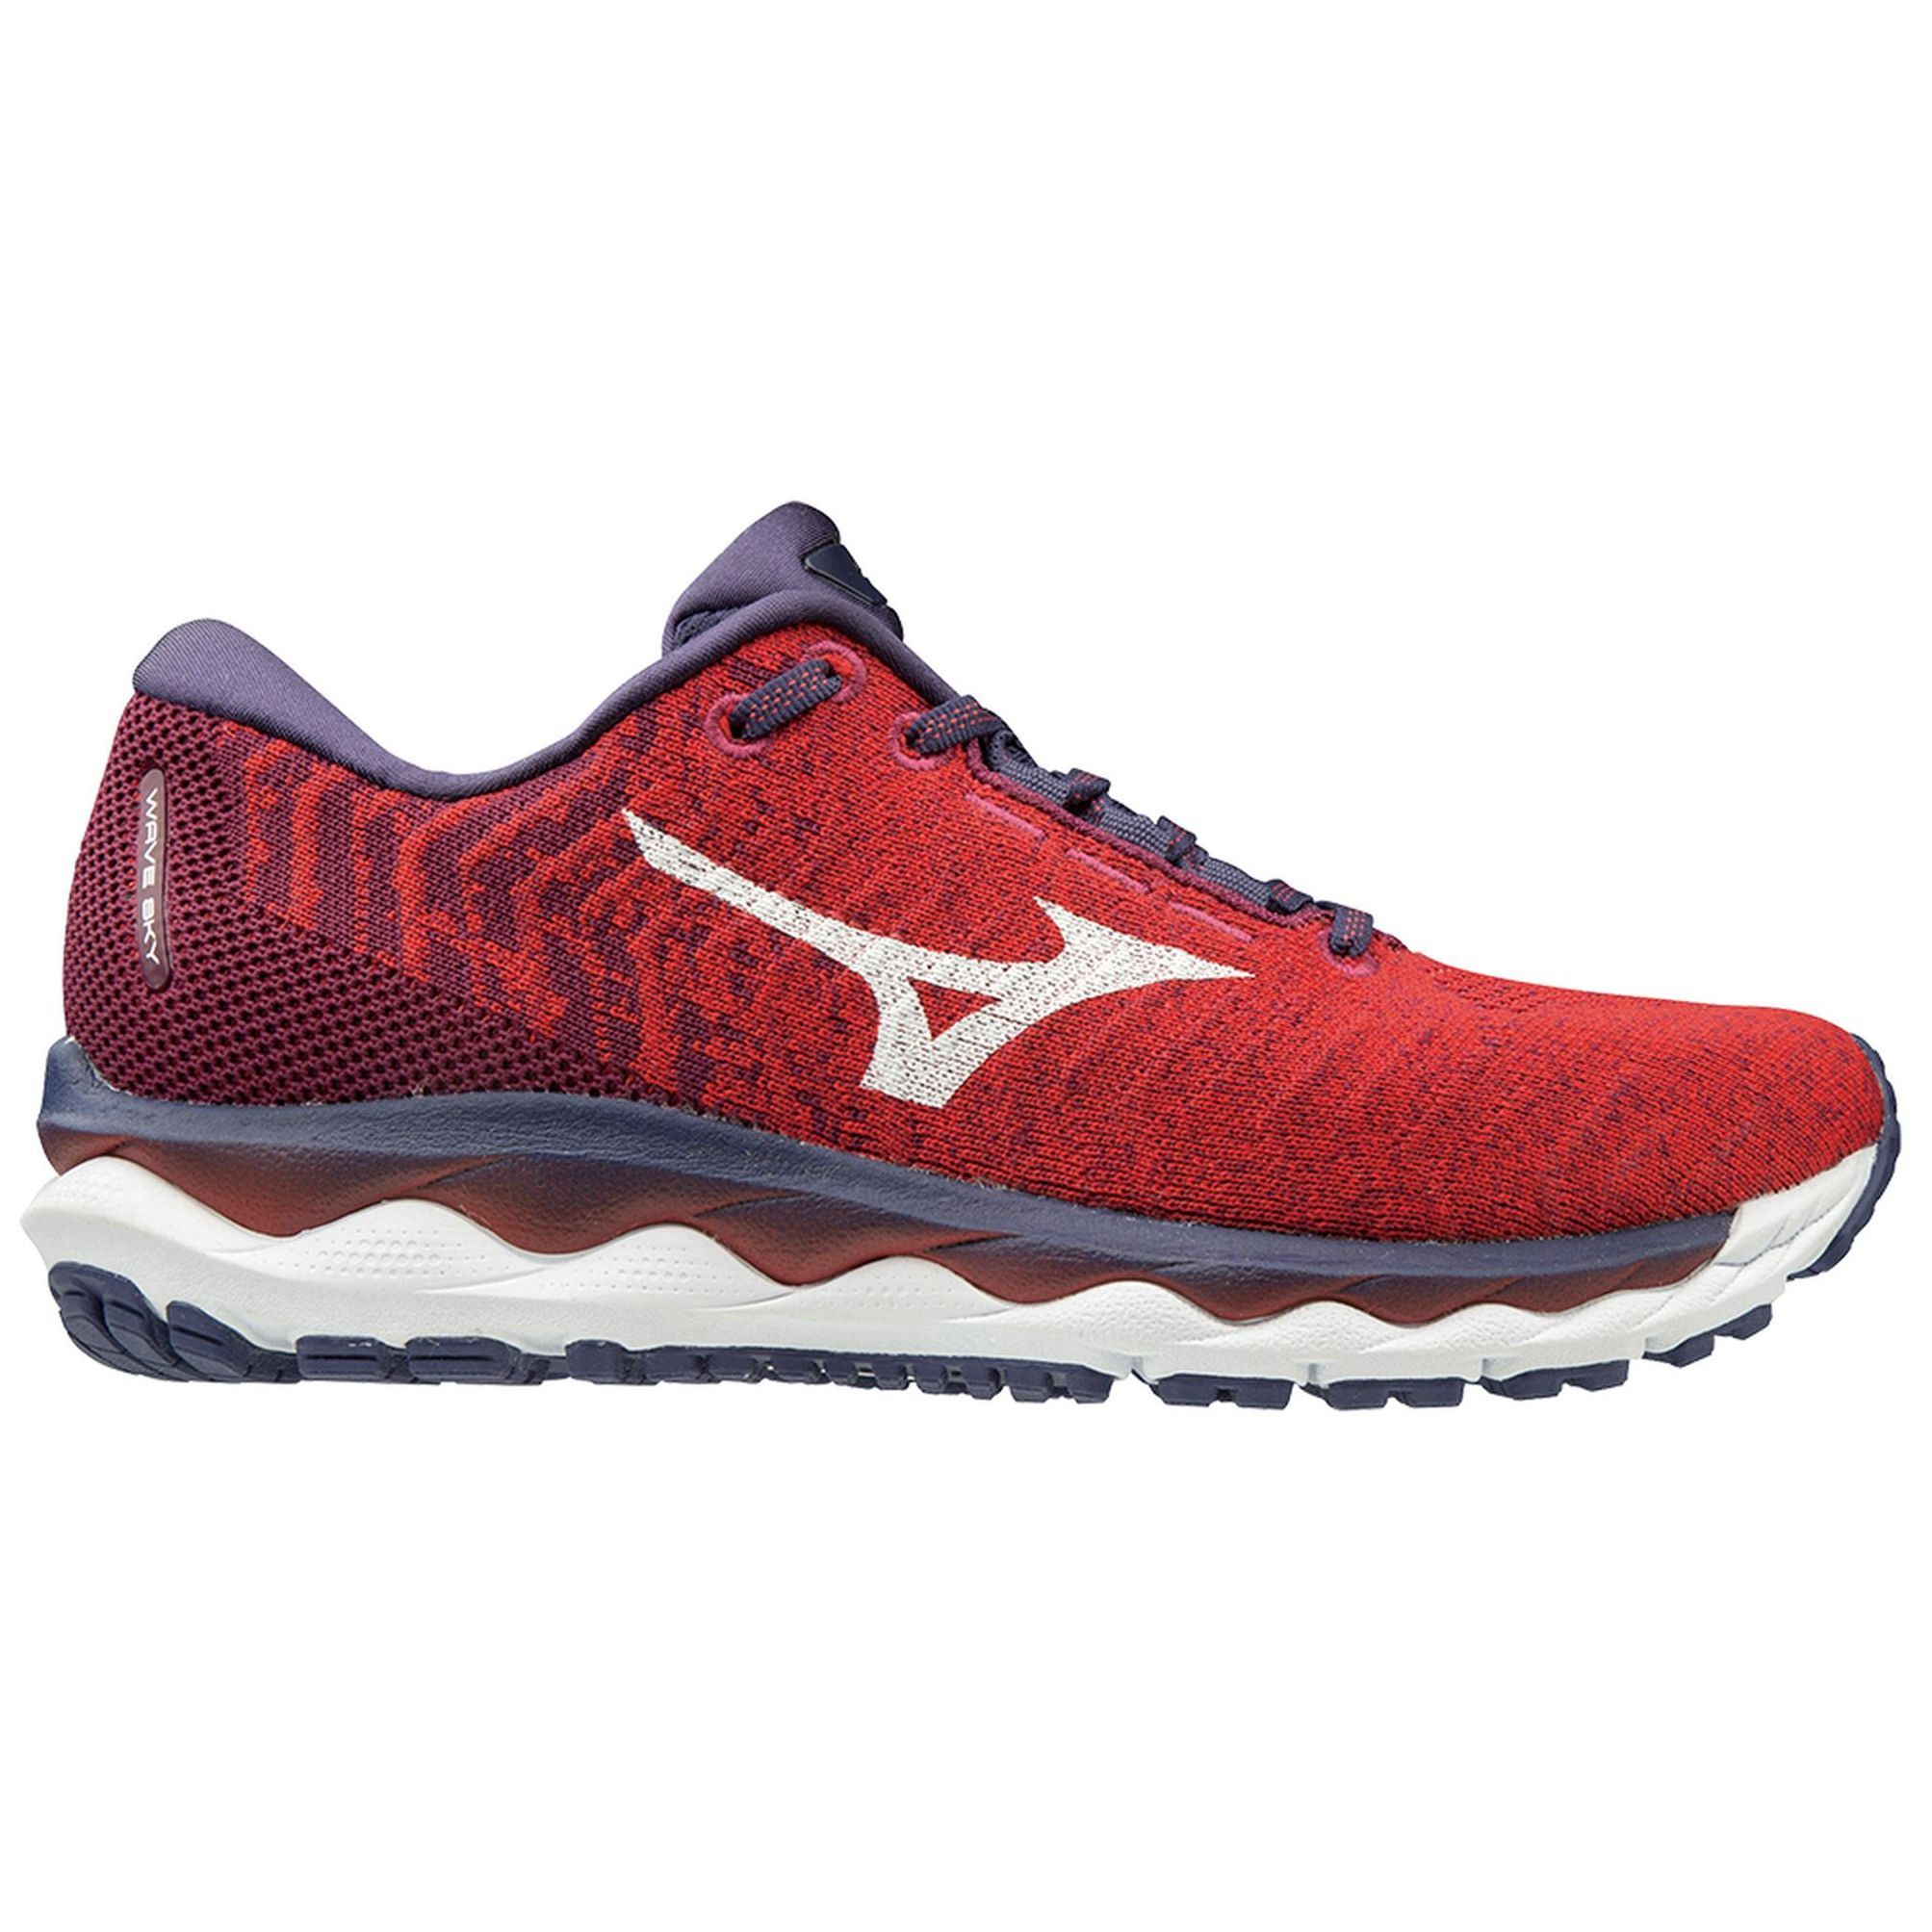 mizuno mens running shoes size 11 youtube trend real estate